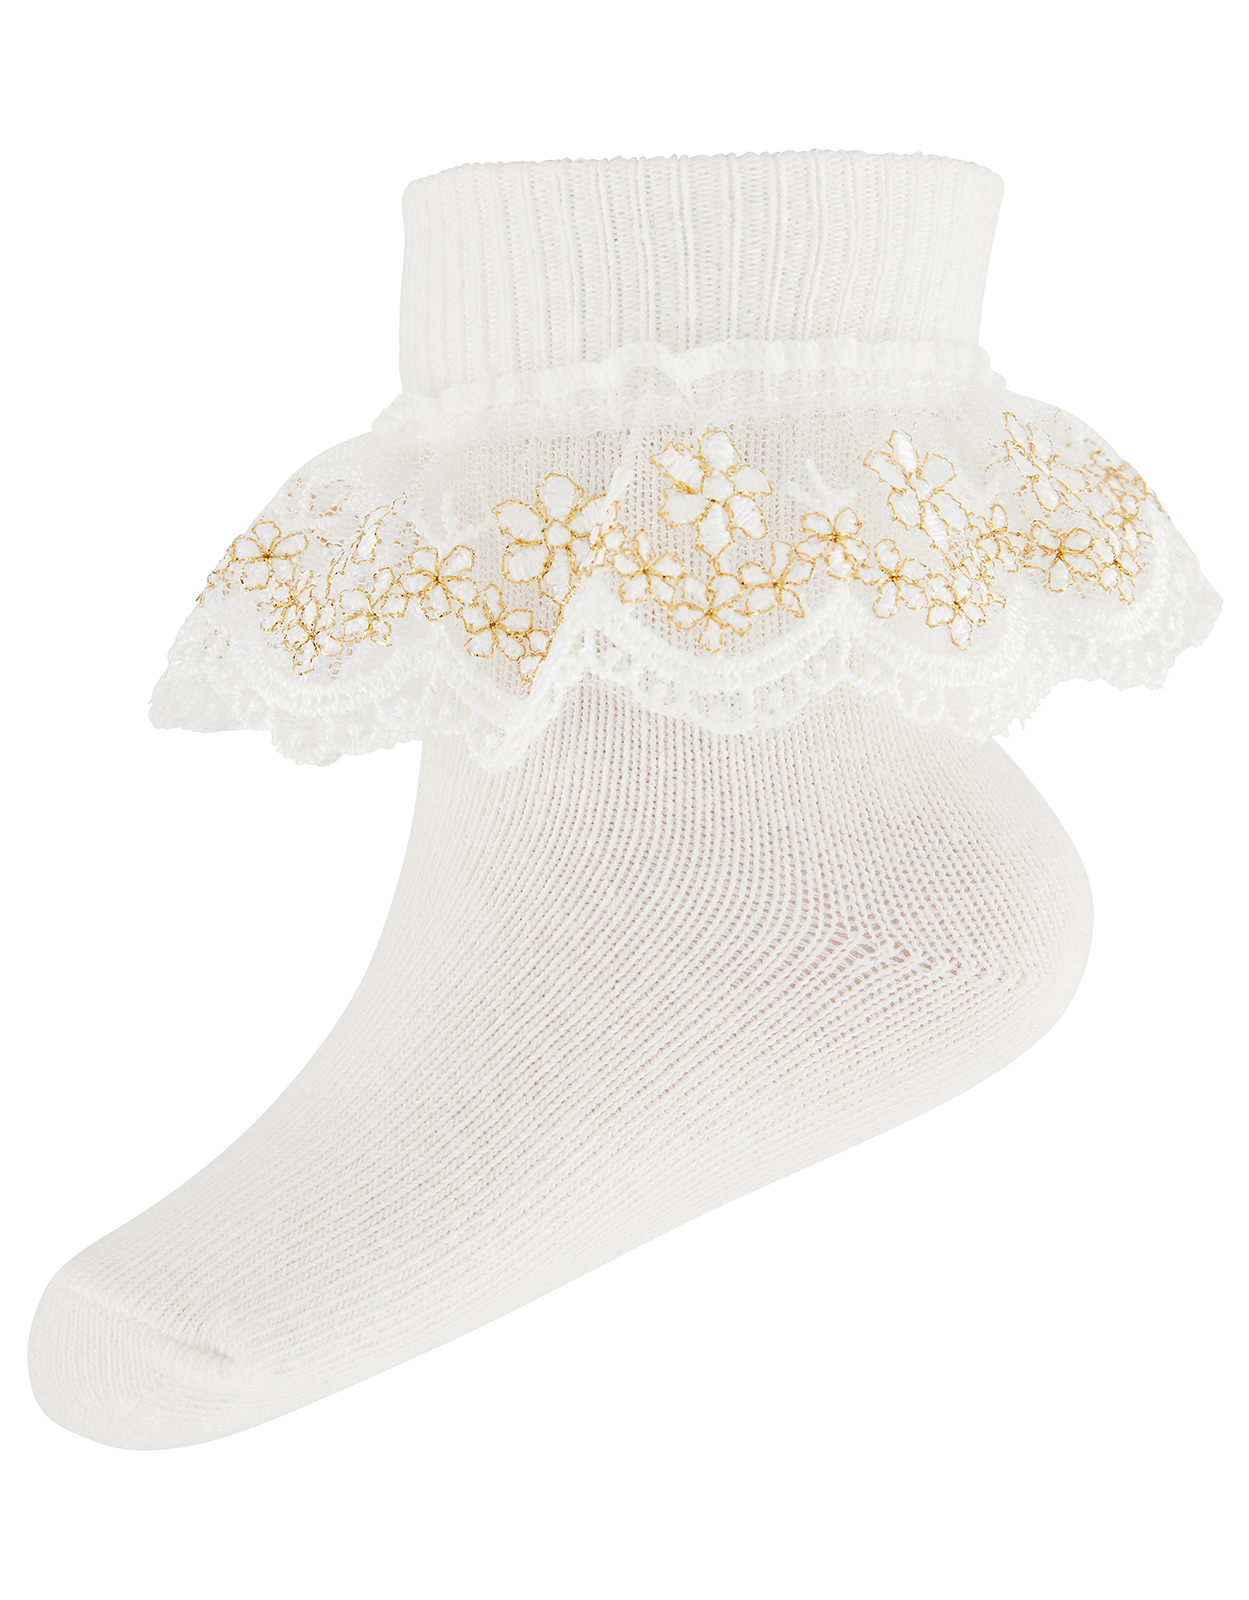 Monsoon Baby Metallic Floral Ankle Socks